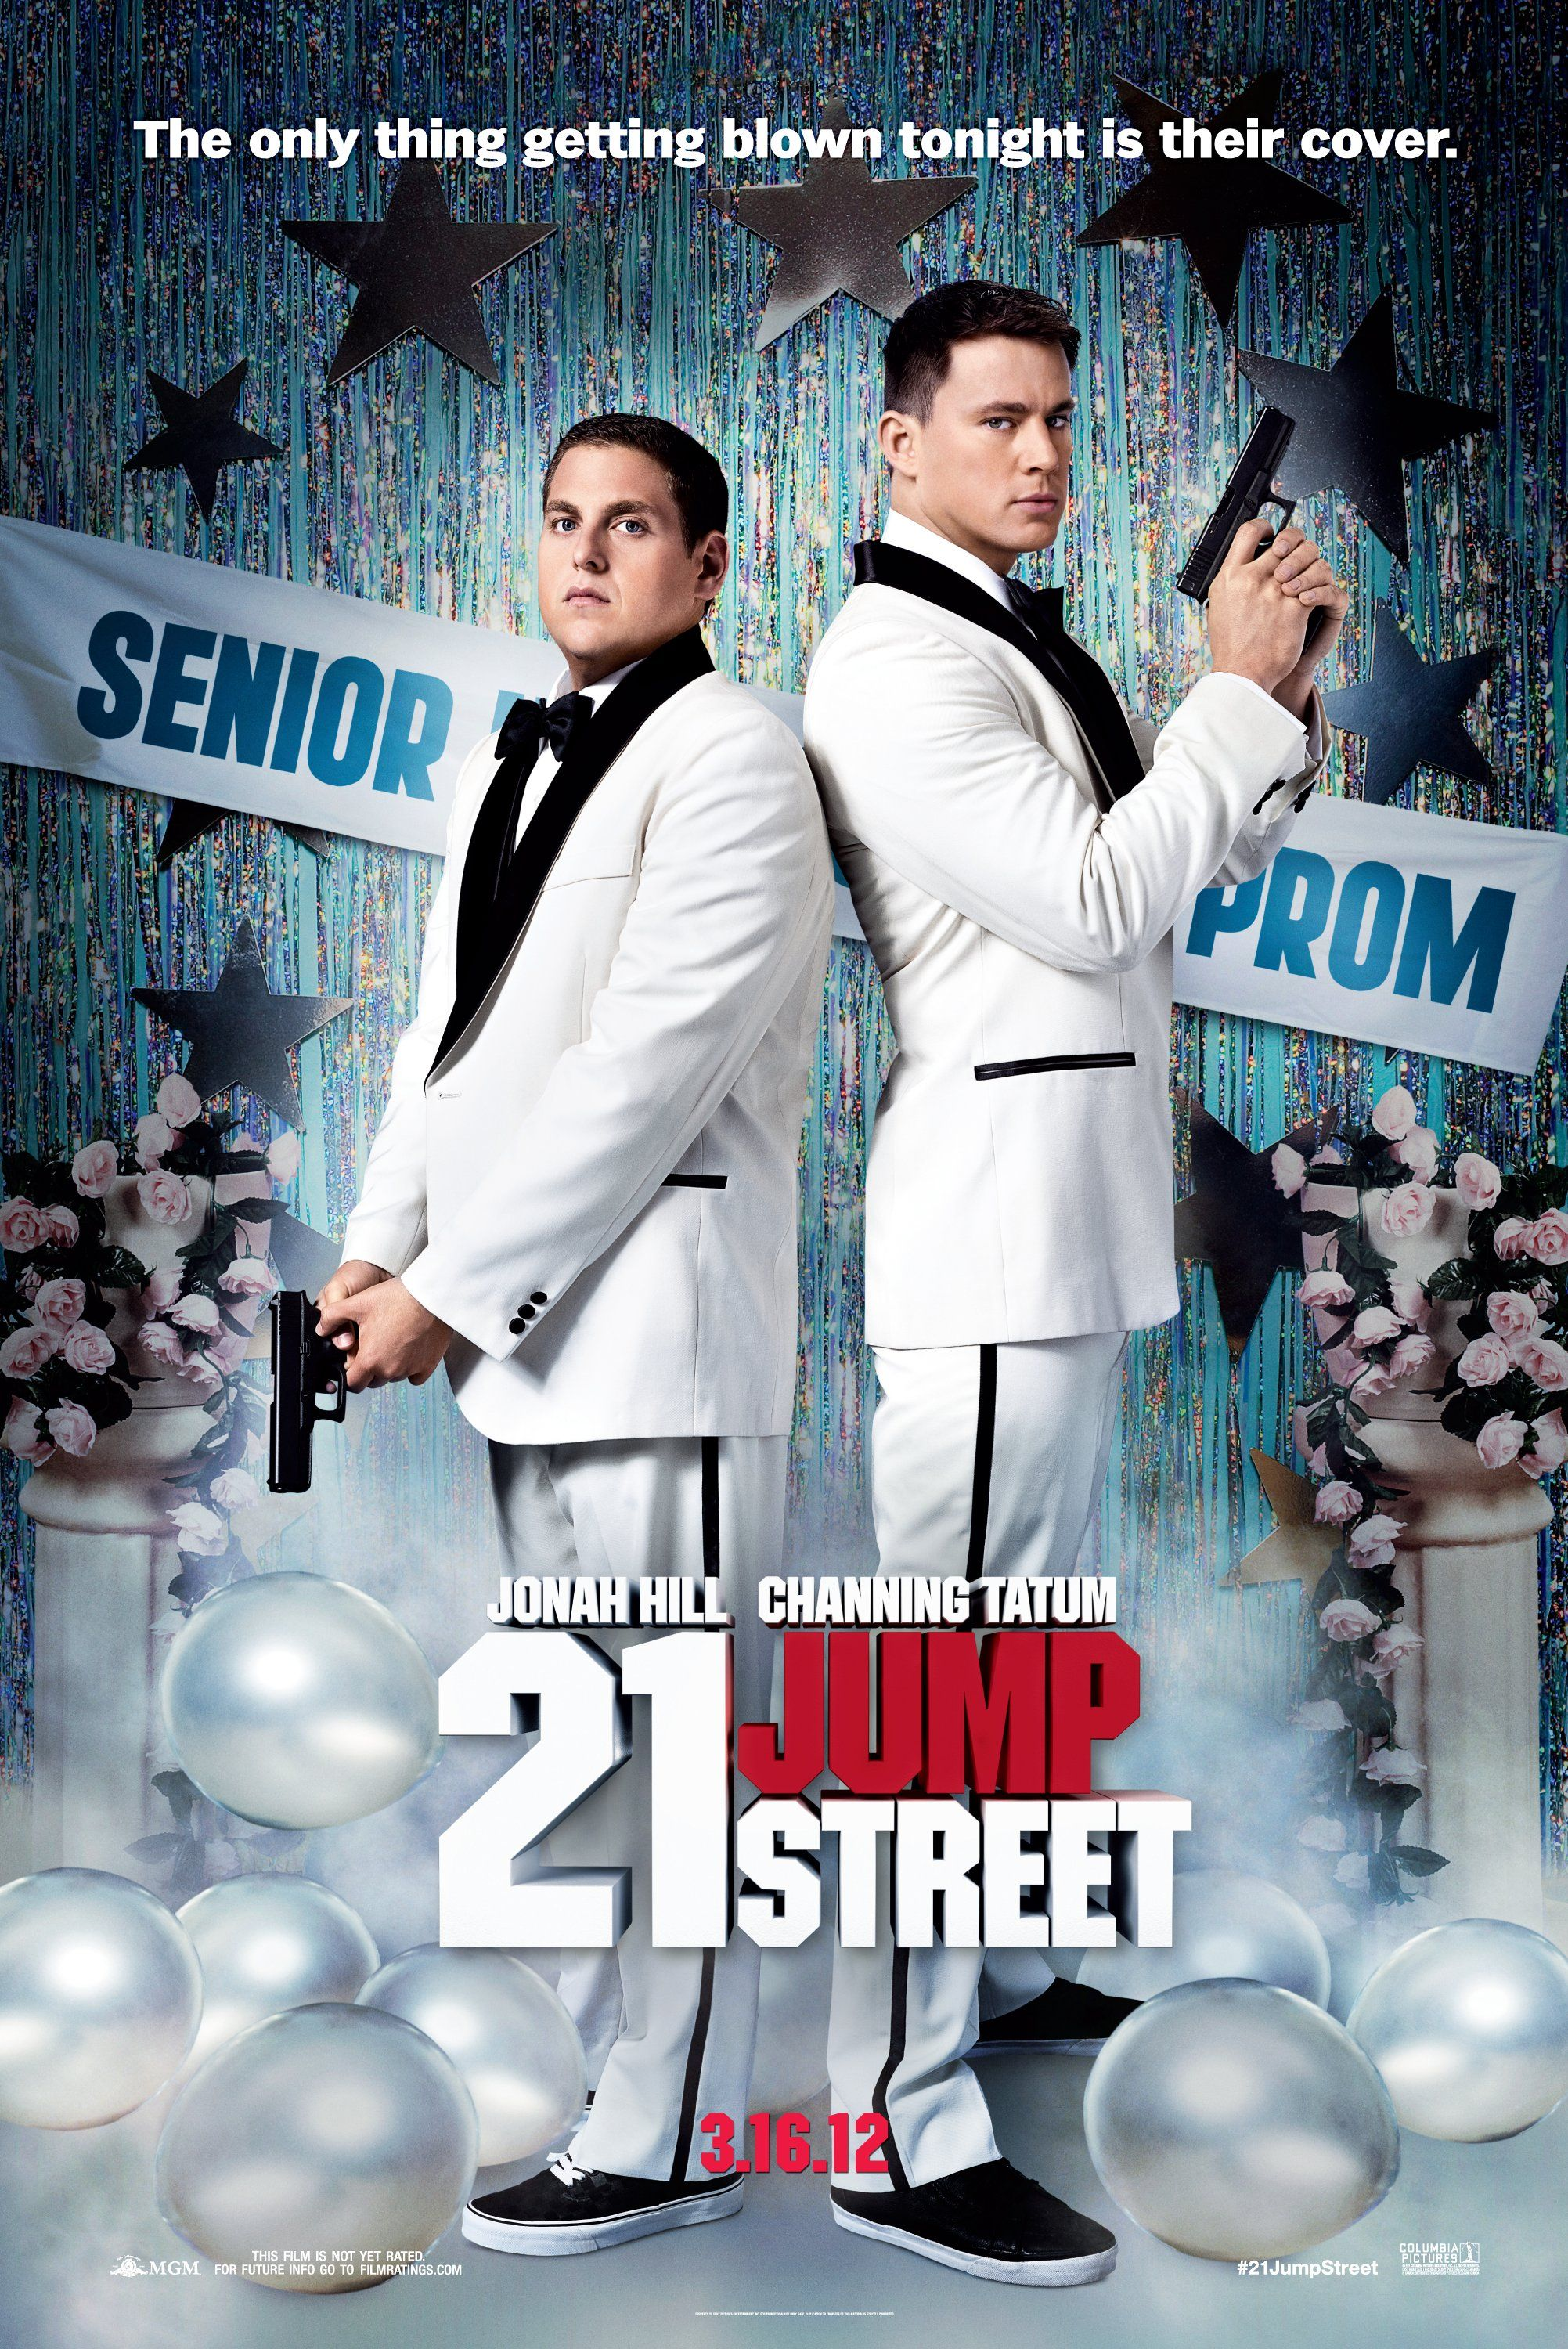 21 jump street | now showing. | pinterest | movies, 21 jump